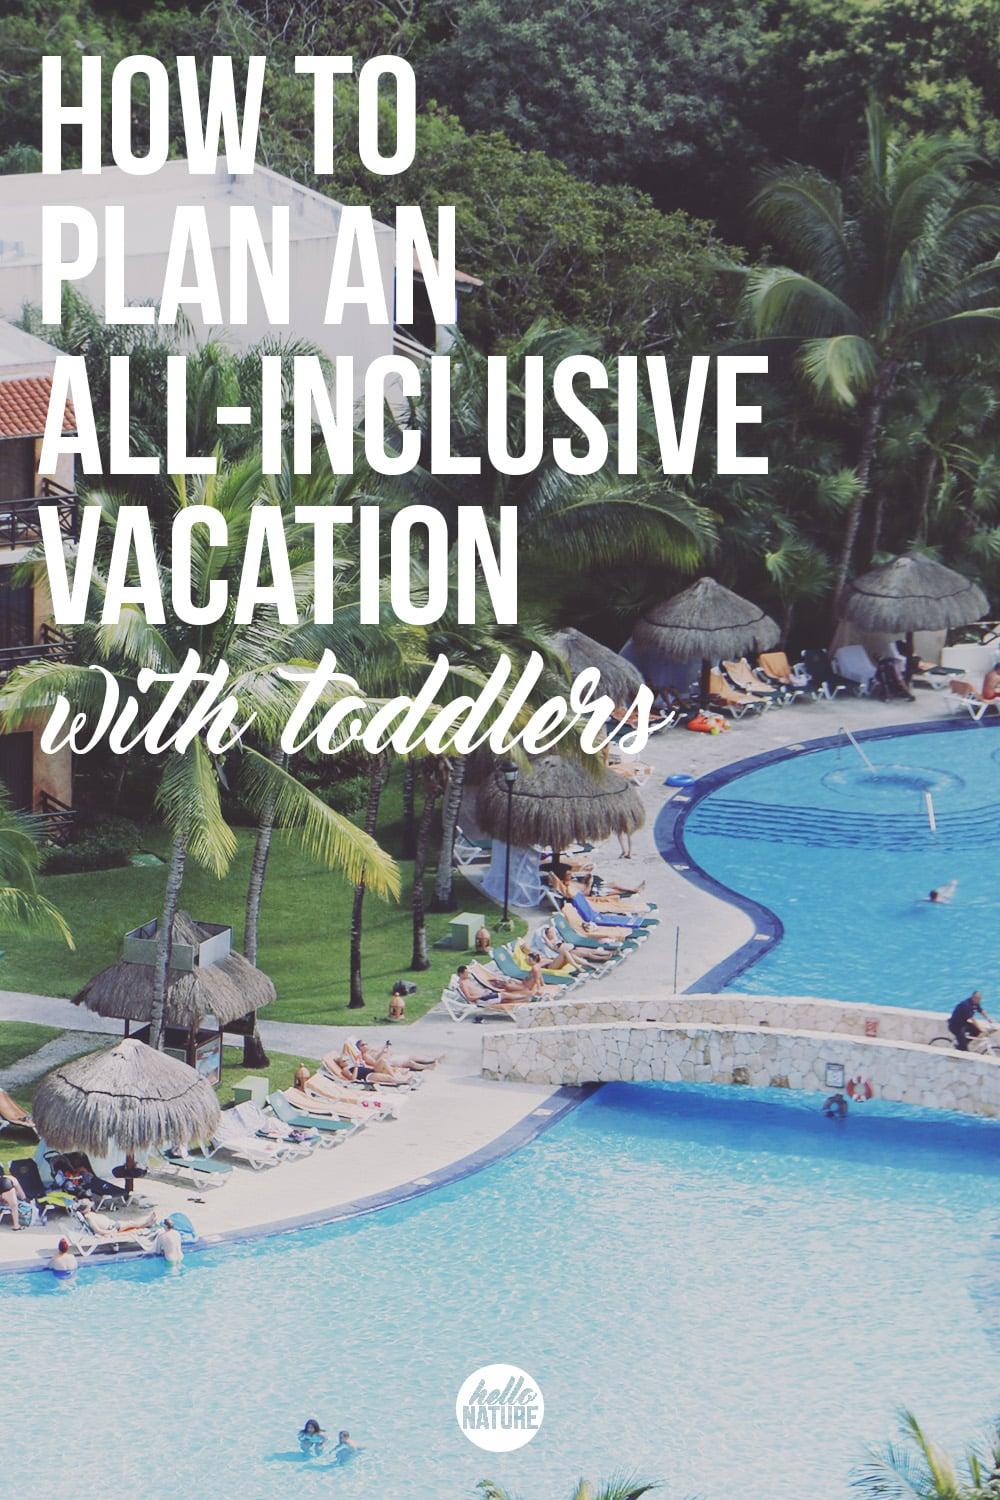 Planning a vacation for your family doesn't have to be hard. This guide gives you a simple plan of how to plan an all-inclusive vacation with toddlers.